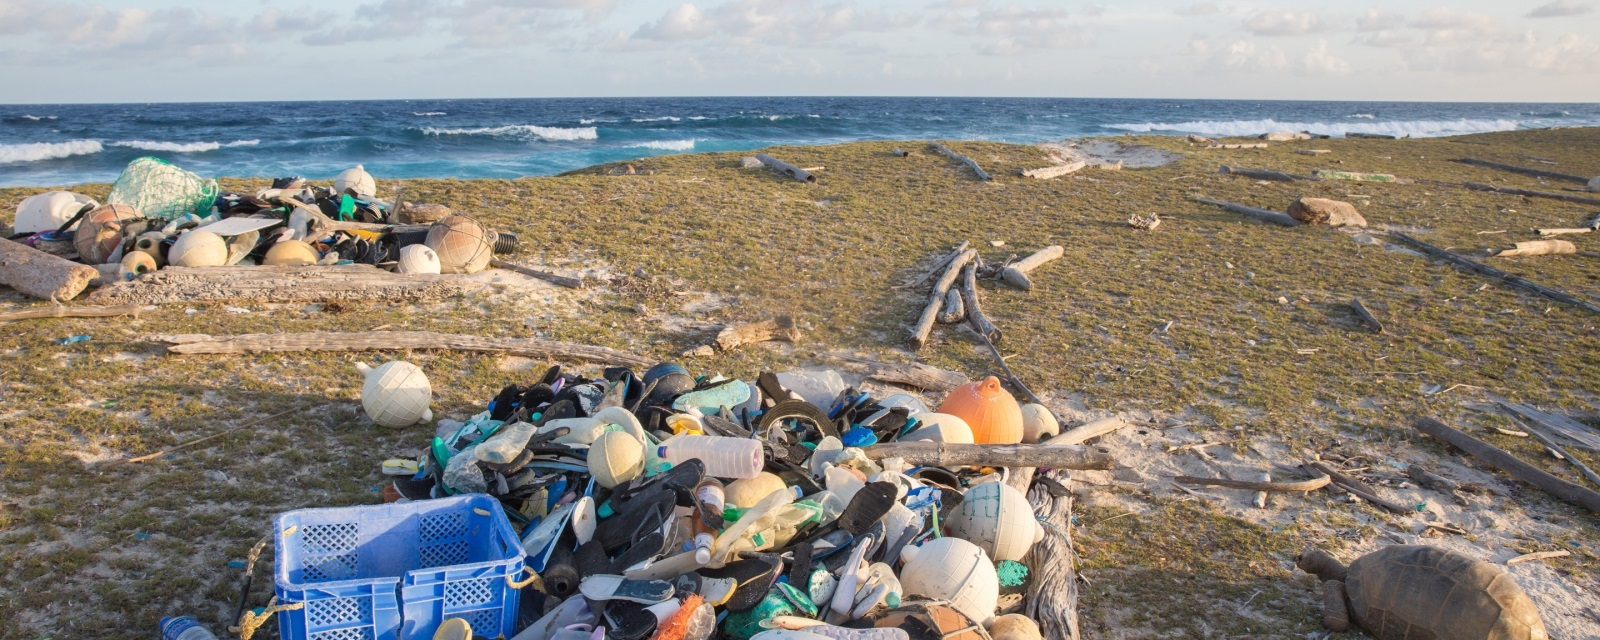 Aldabra trash on beach